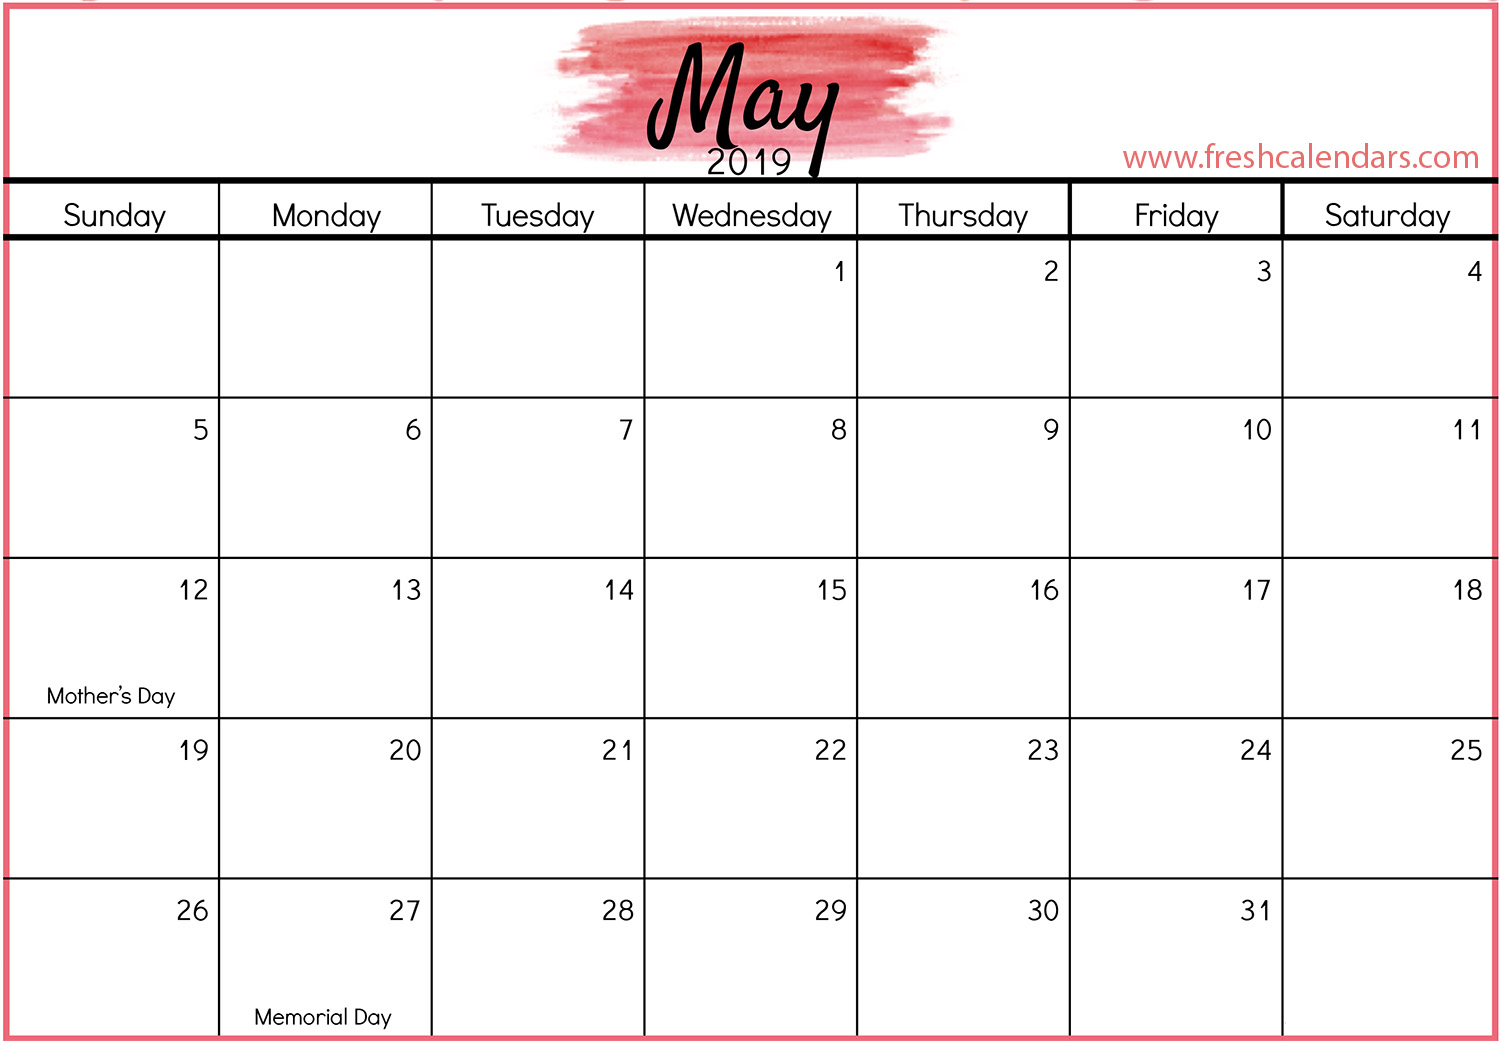 May 2019 Calendar Red Template